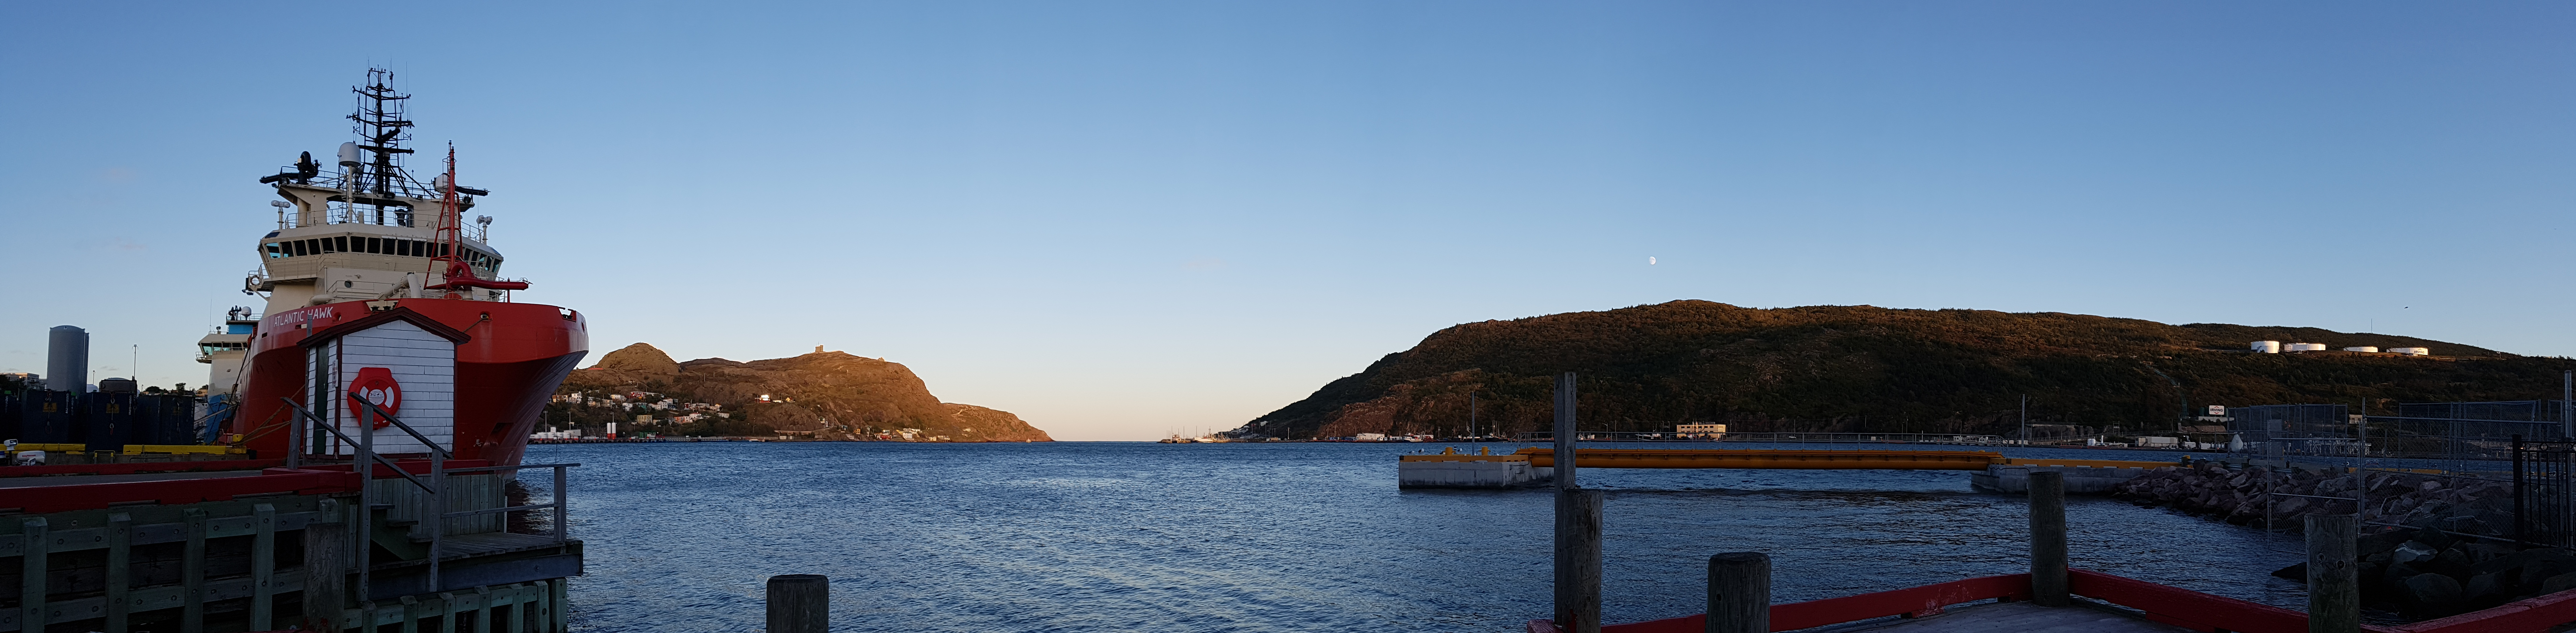 Rugged St. John's harbour, Canada